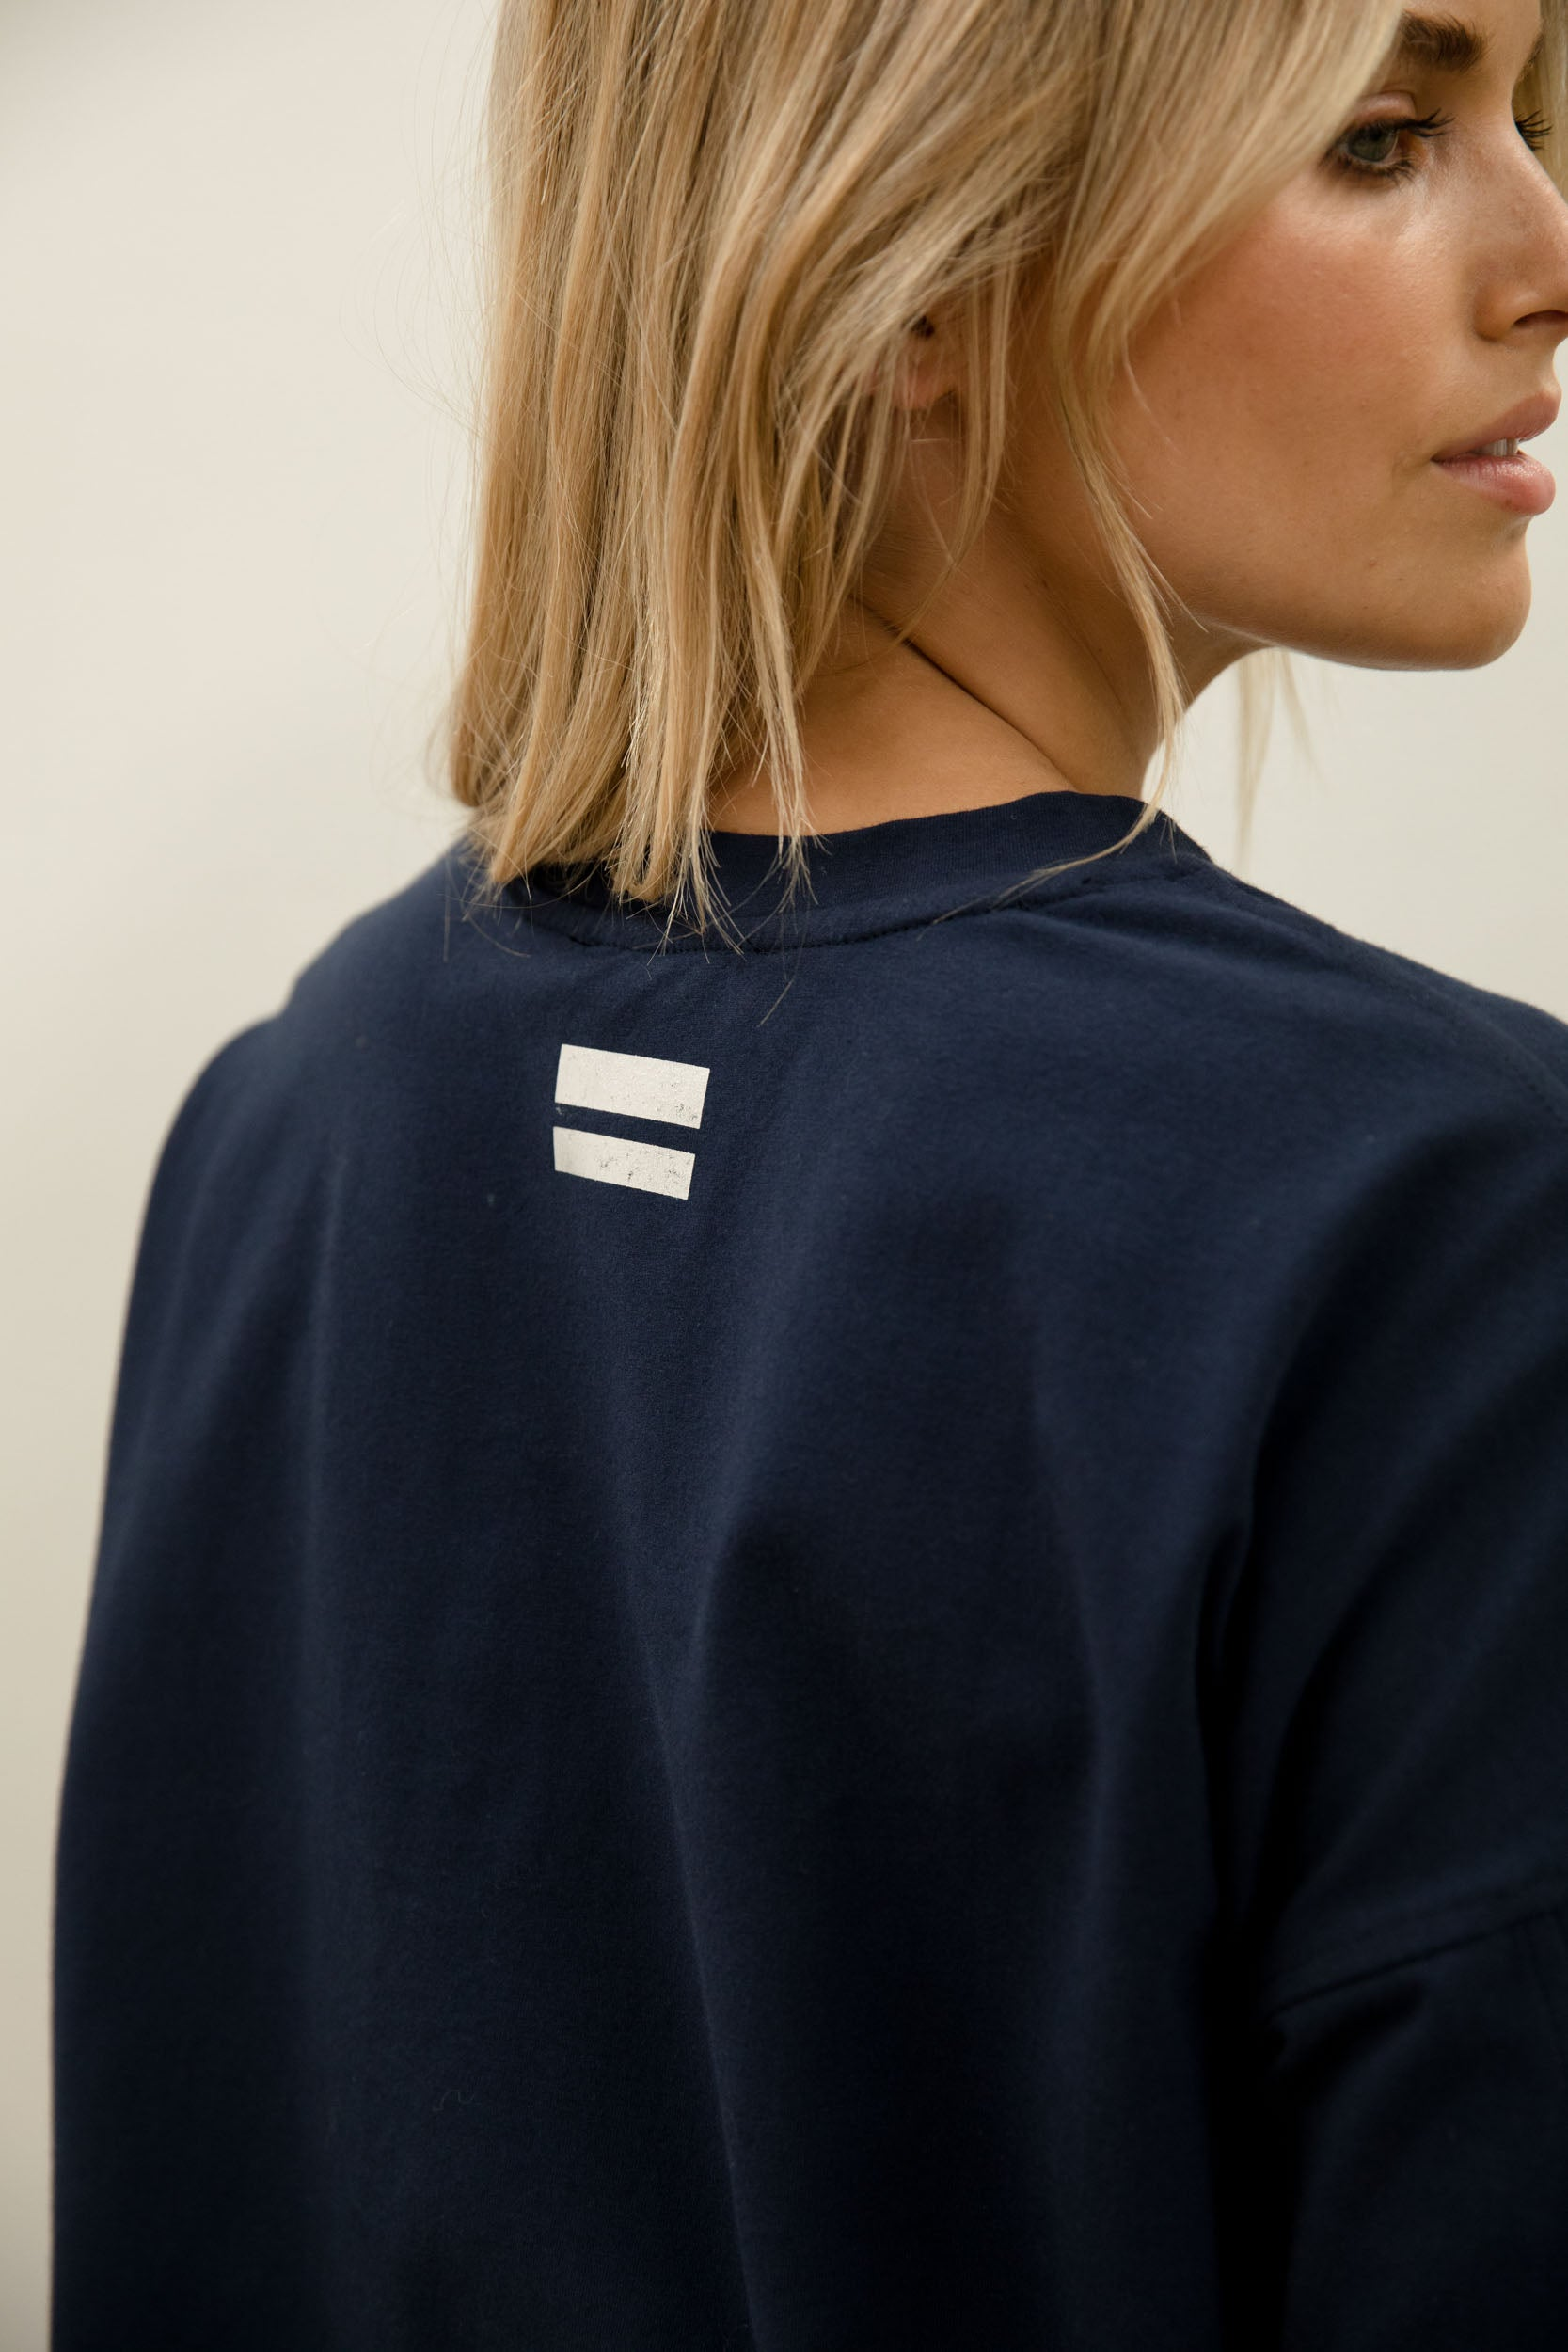 Eve Lightweight Sweat - navy - Bande Studio - Australian Knitwear